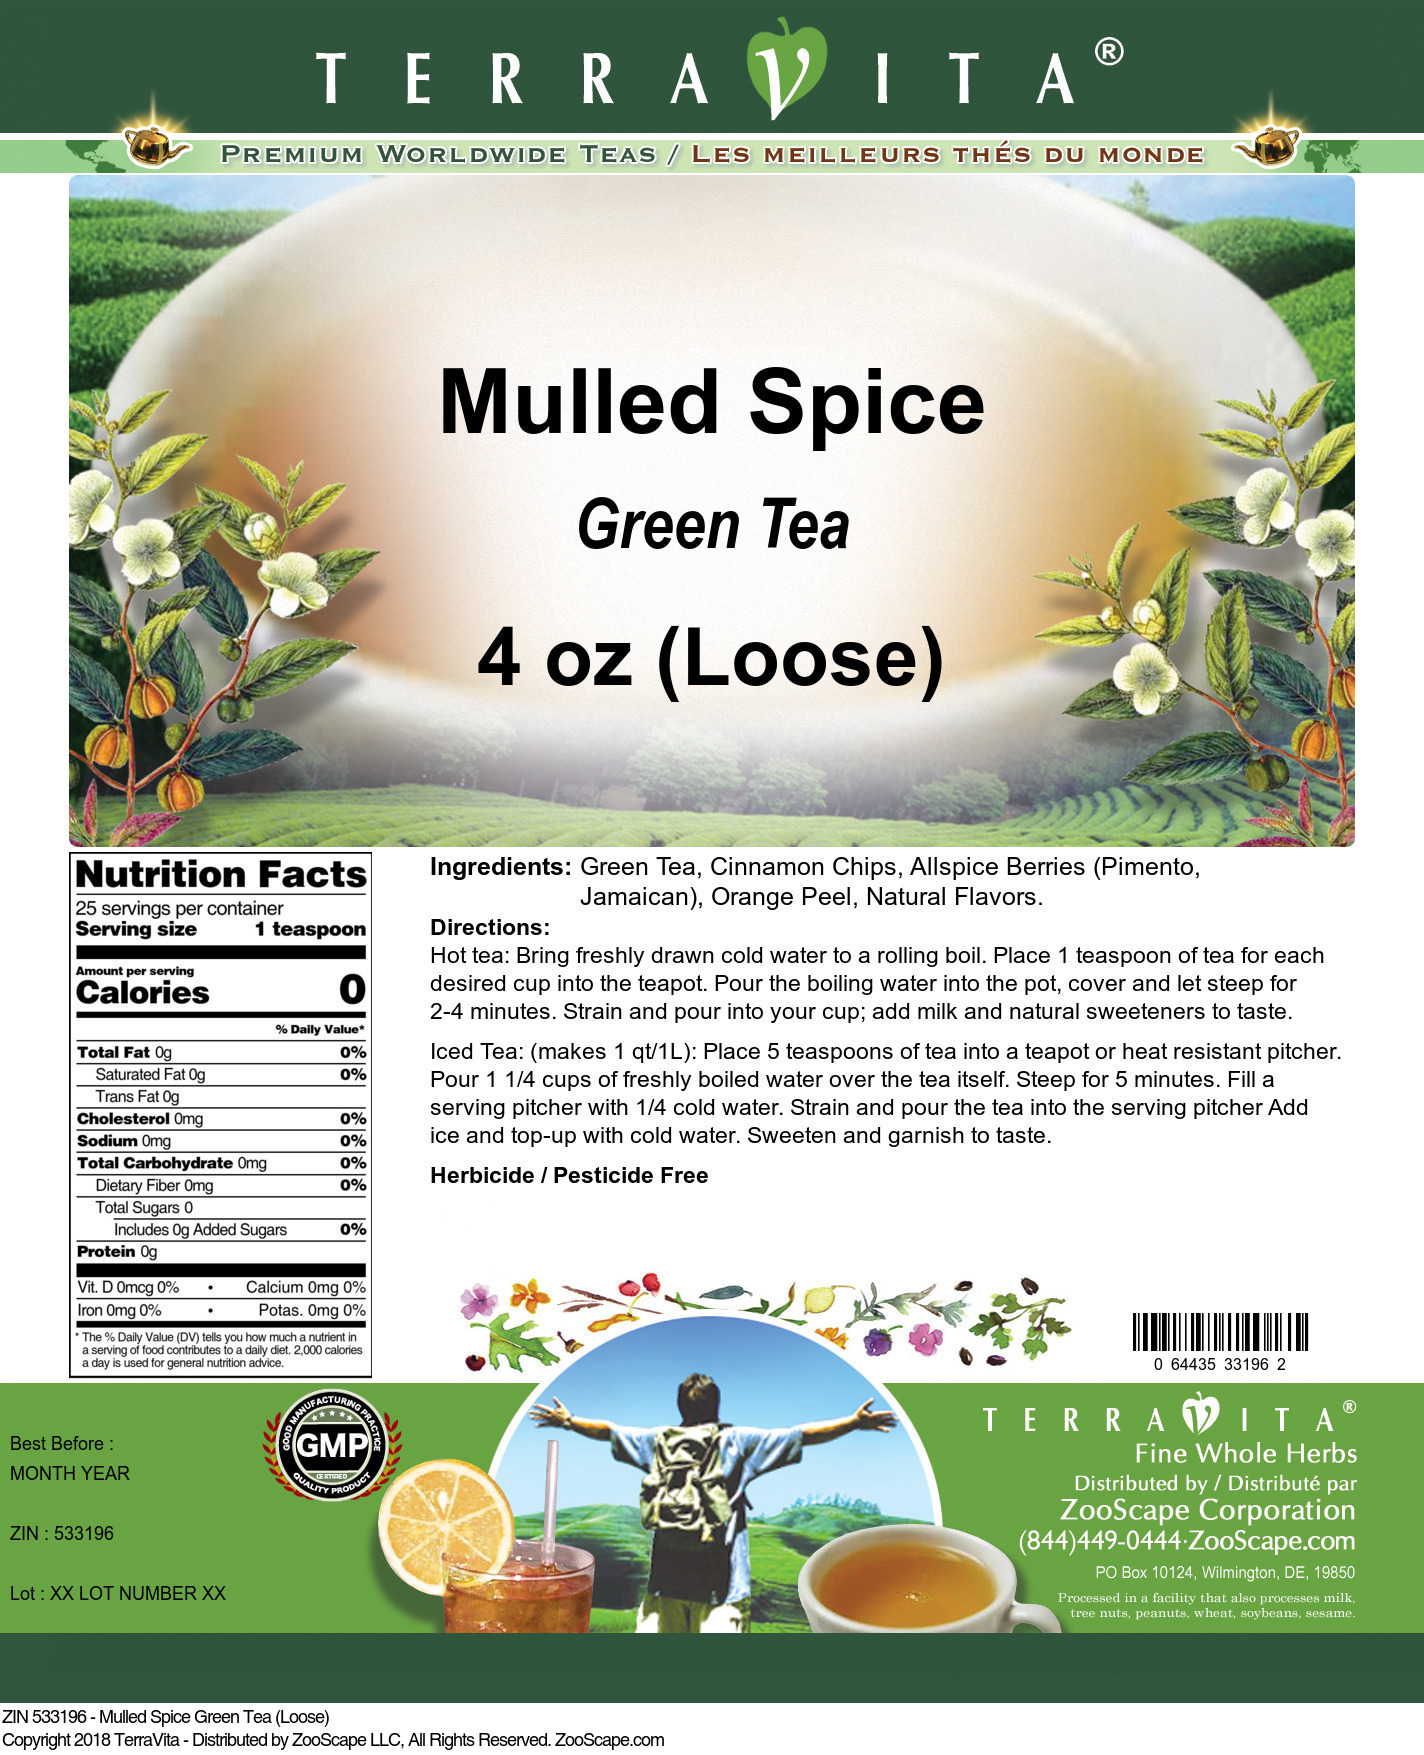 Mulled Spice Green Tea